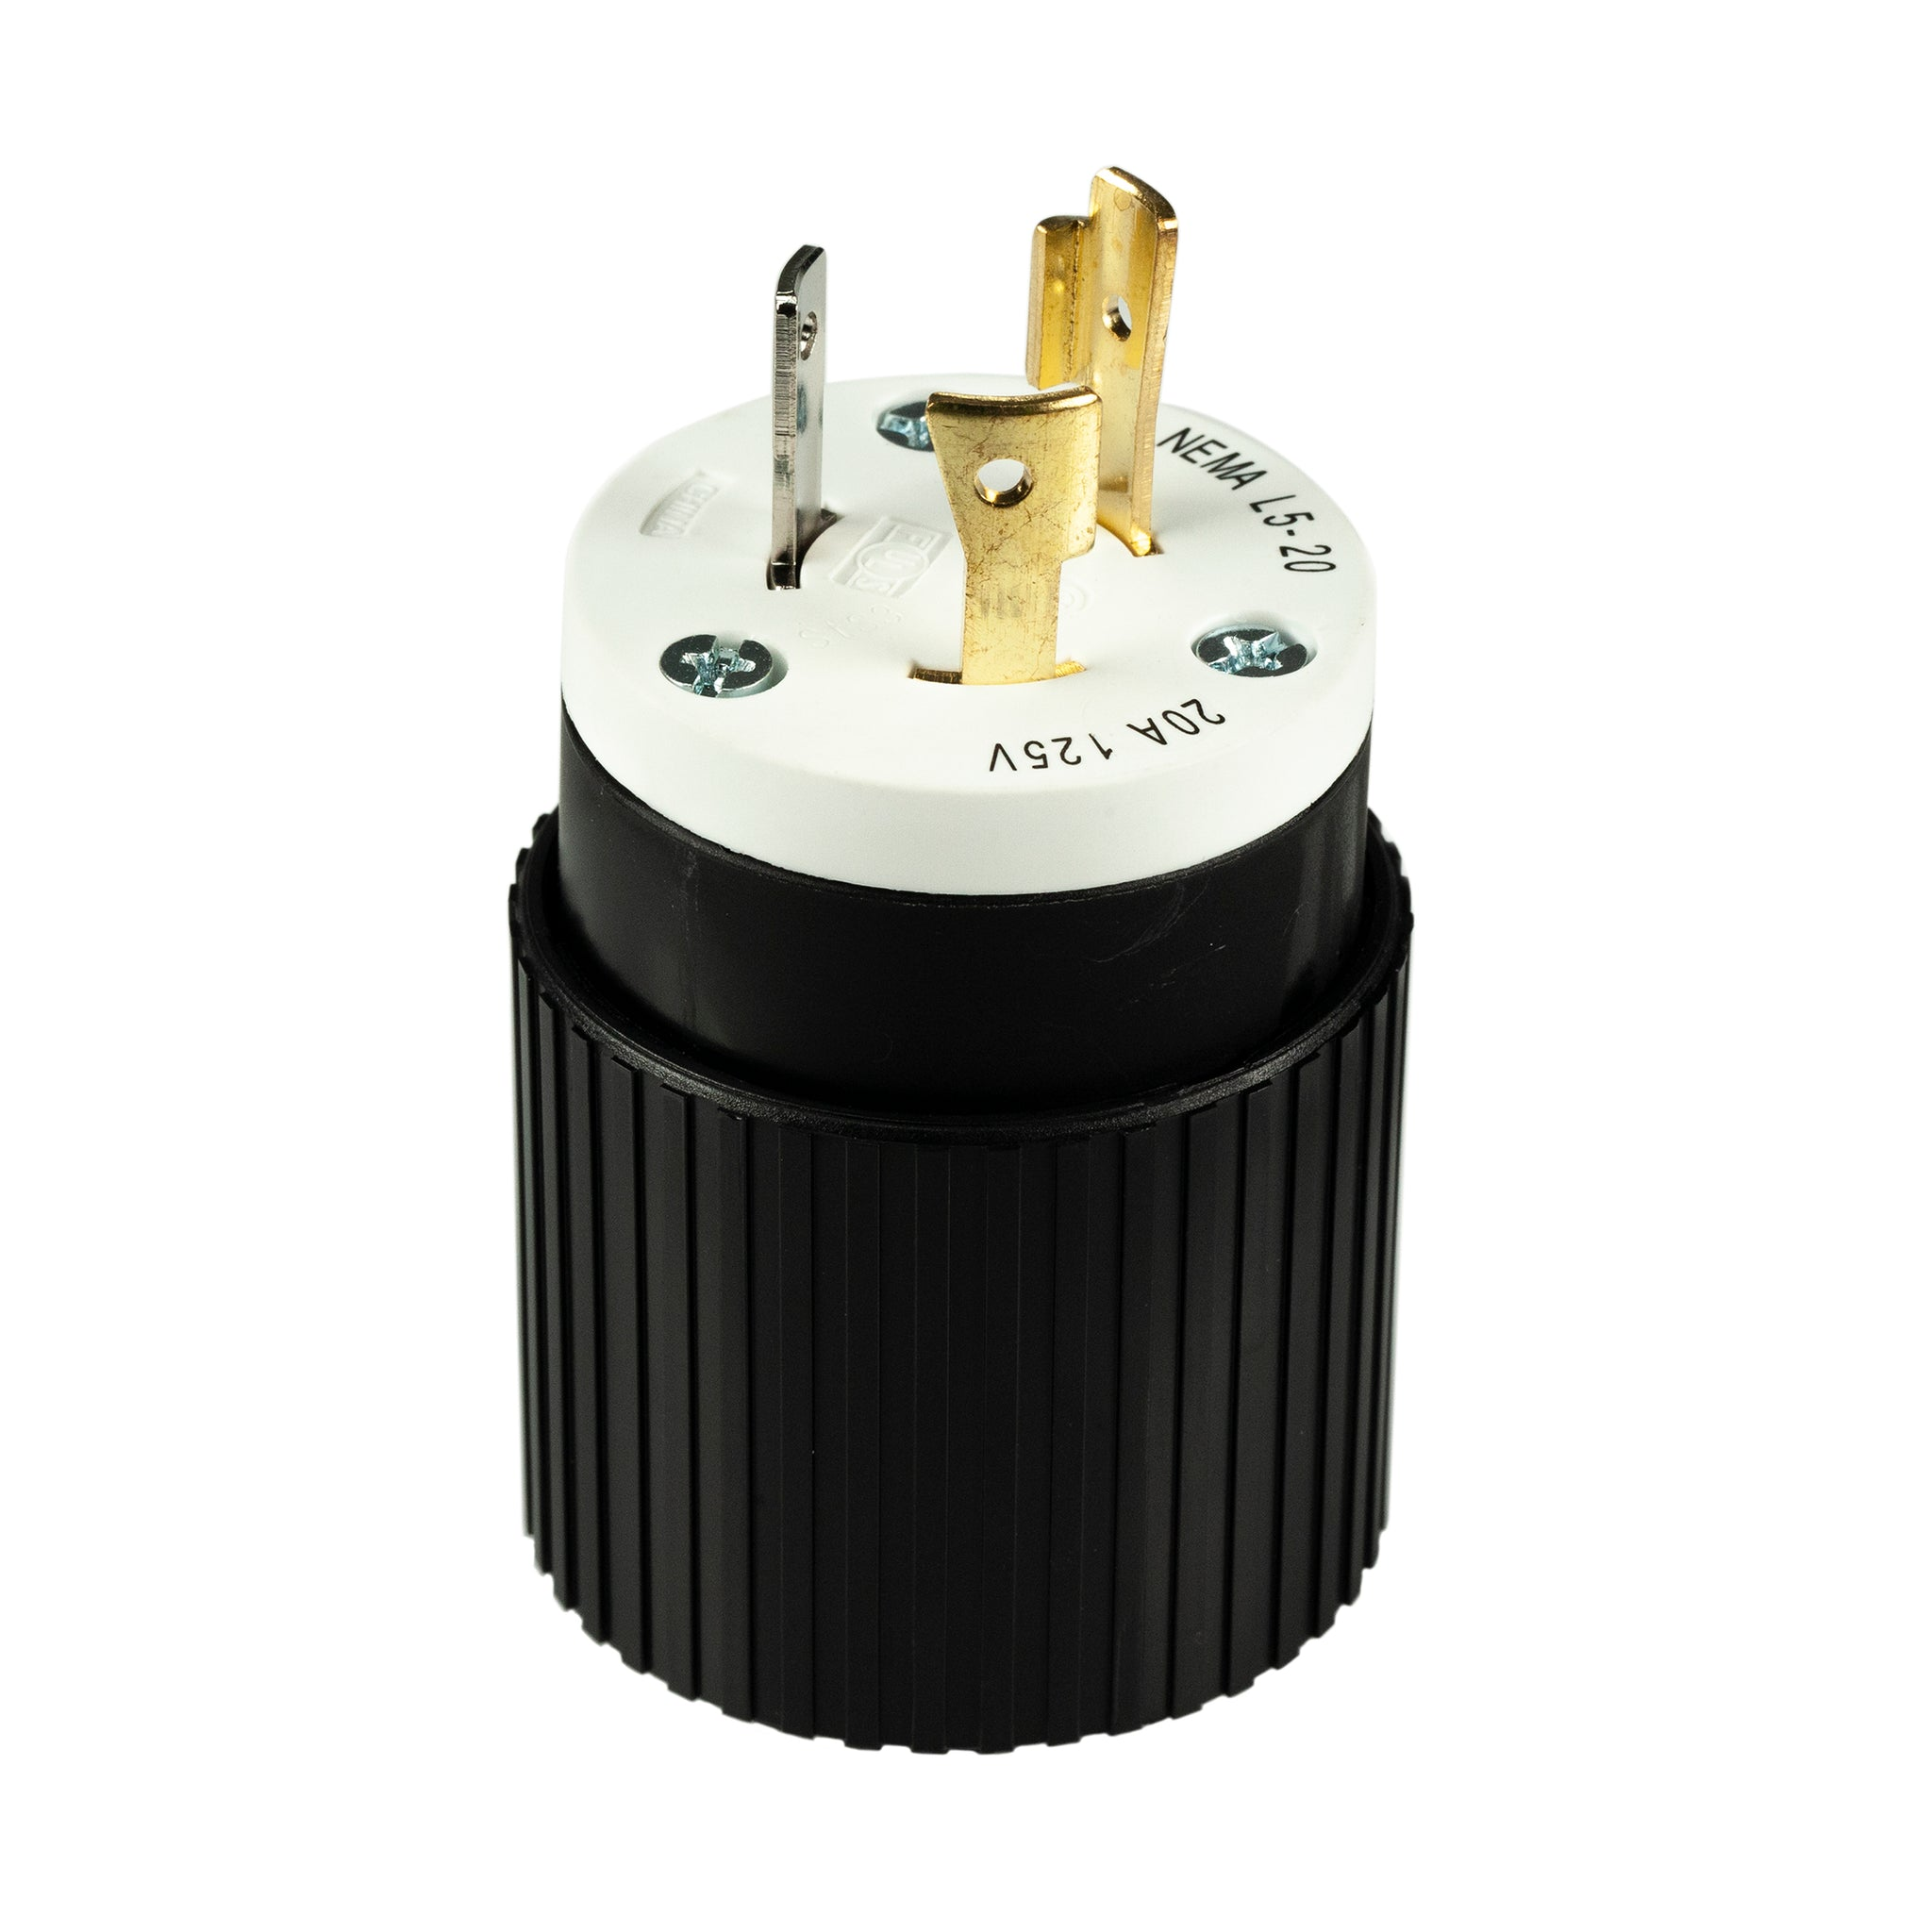 20A, 125VAC, 2 Pole 3 Wire Locking Plug